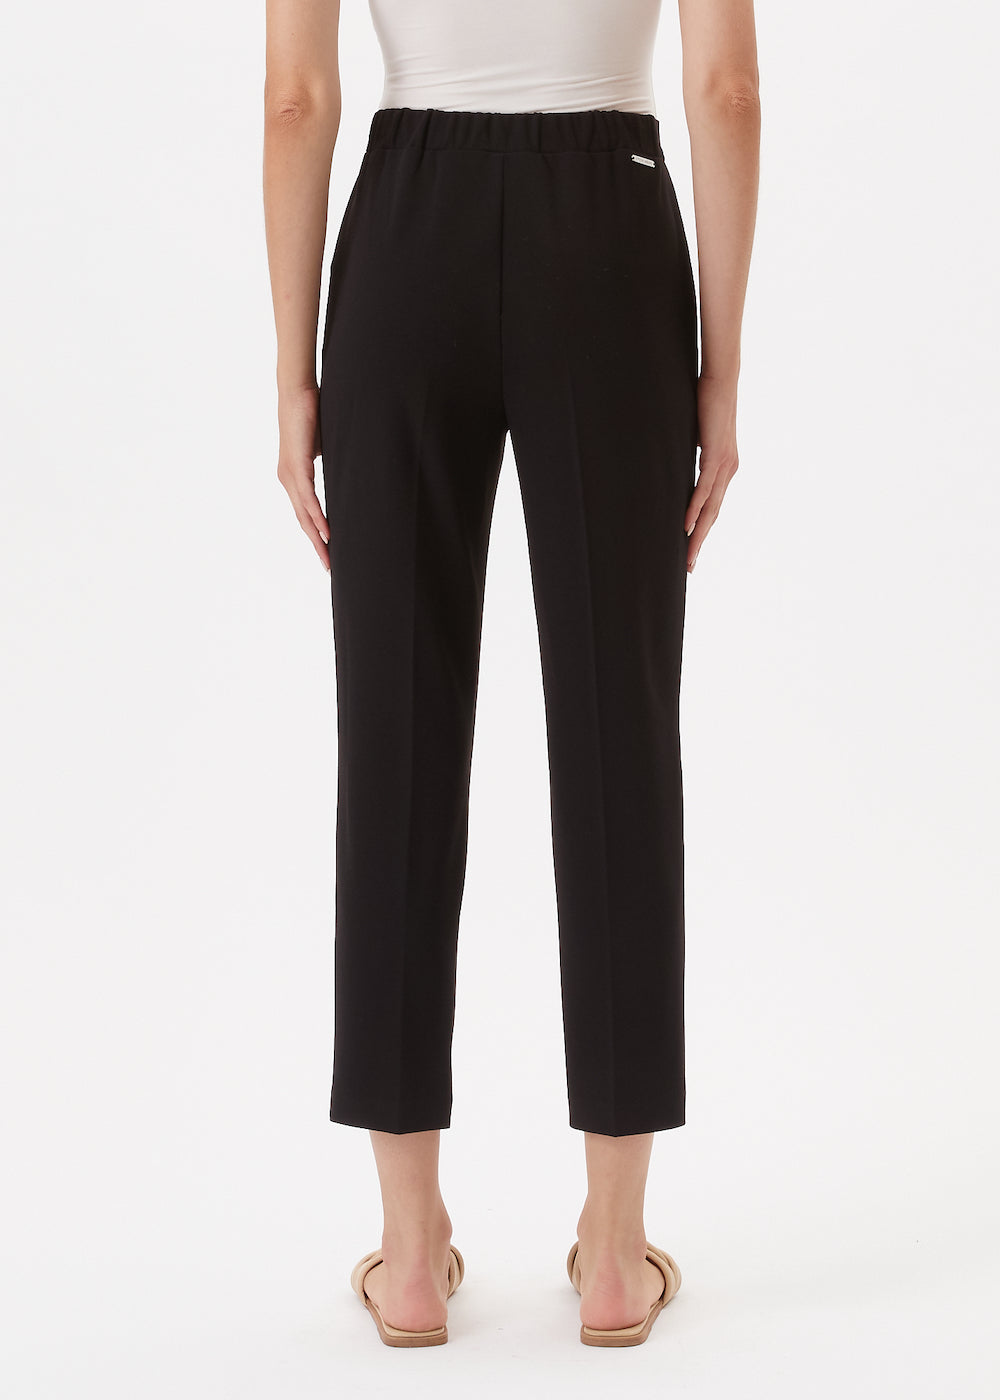 Alicia Trouser Black